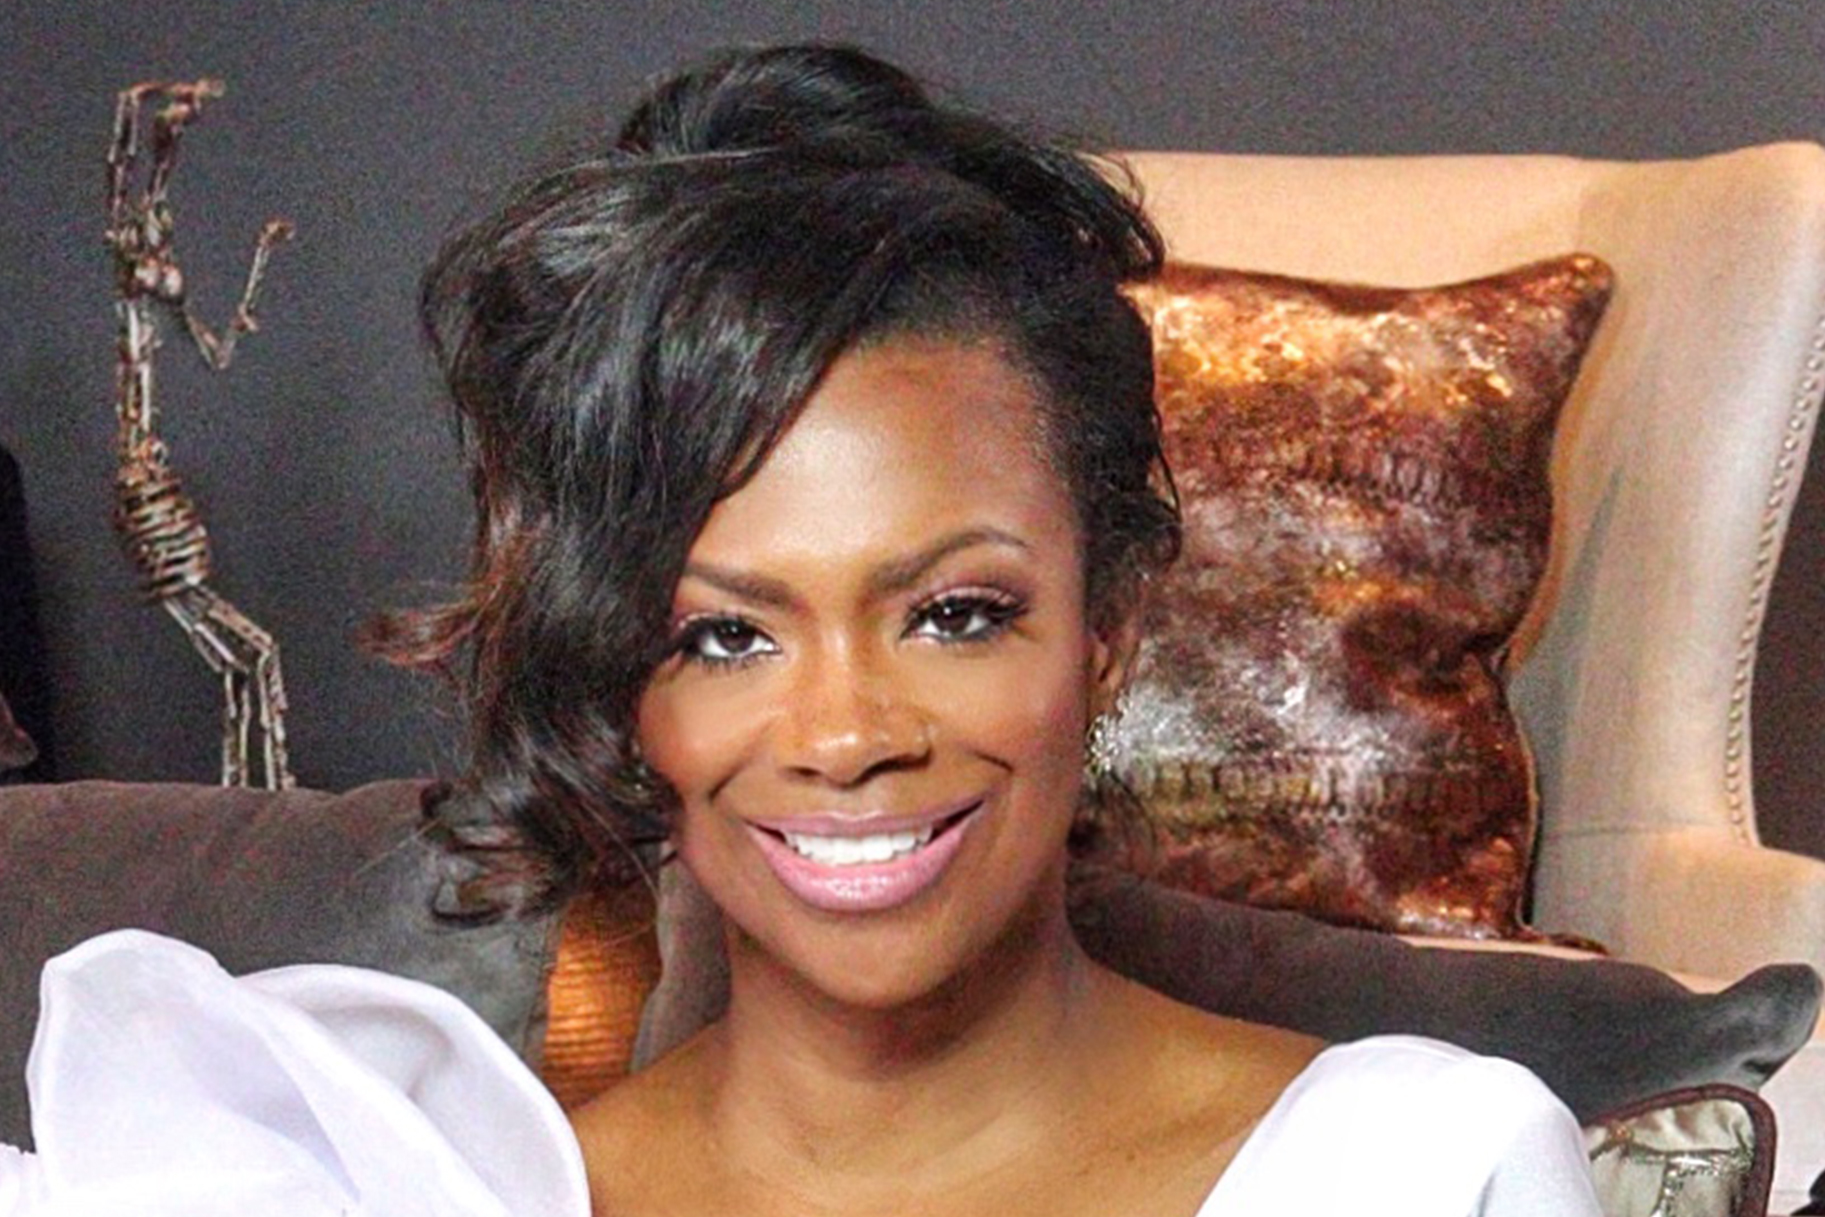 Kandi Burruss Is Getting Better At Makeup - Check Out The Latest Look She Created